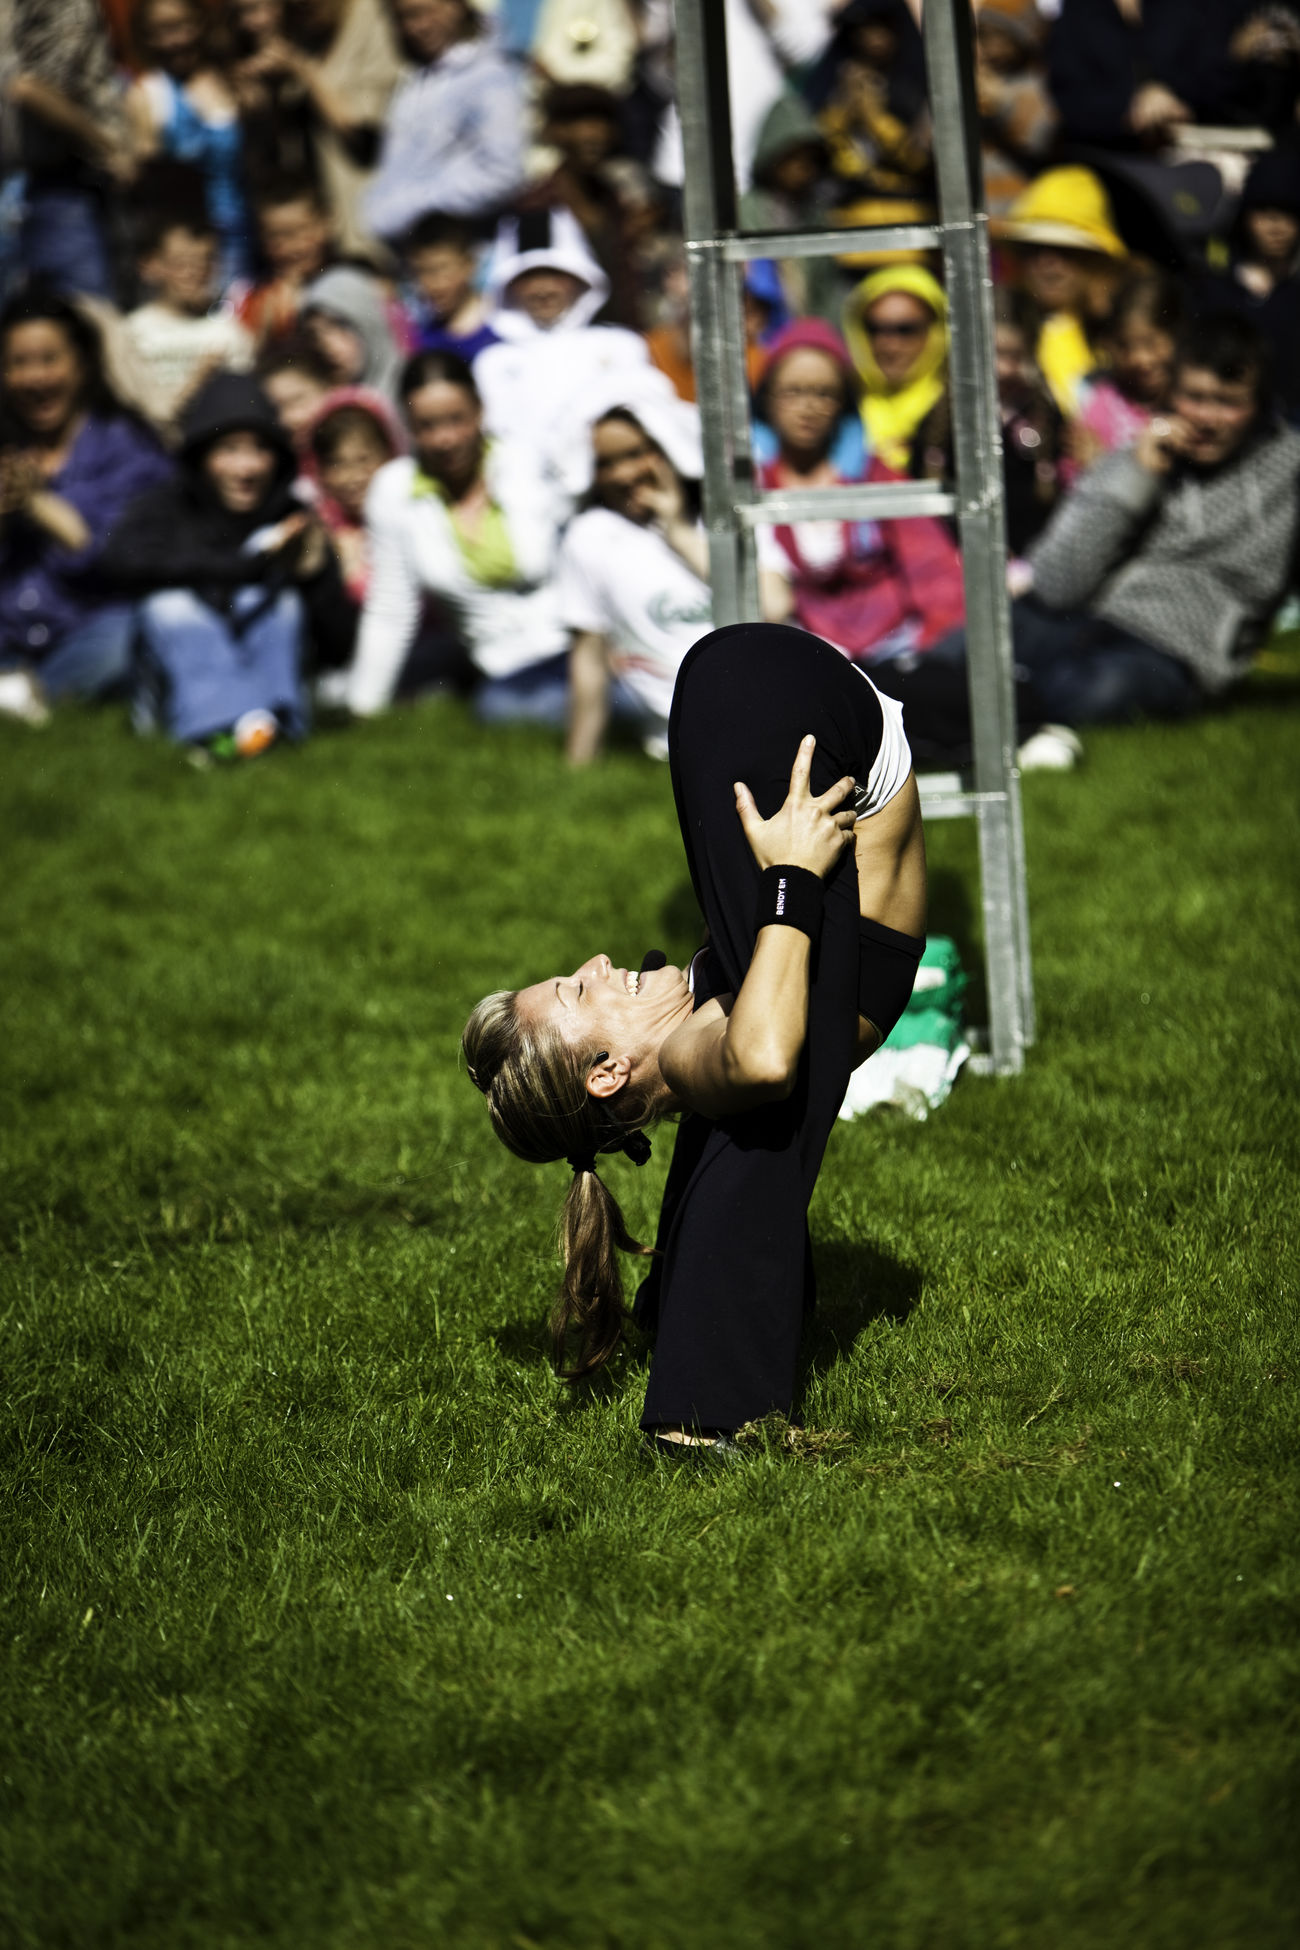 Artist Audience Bendy BendyEm Contortionist Cork Crowd Fitzgeralds Park Focus On Foreground Ireland Performance Street Theatre Theatre